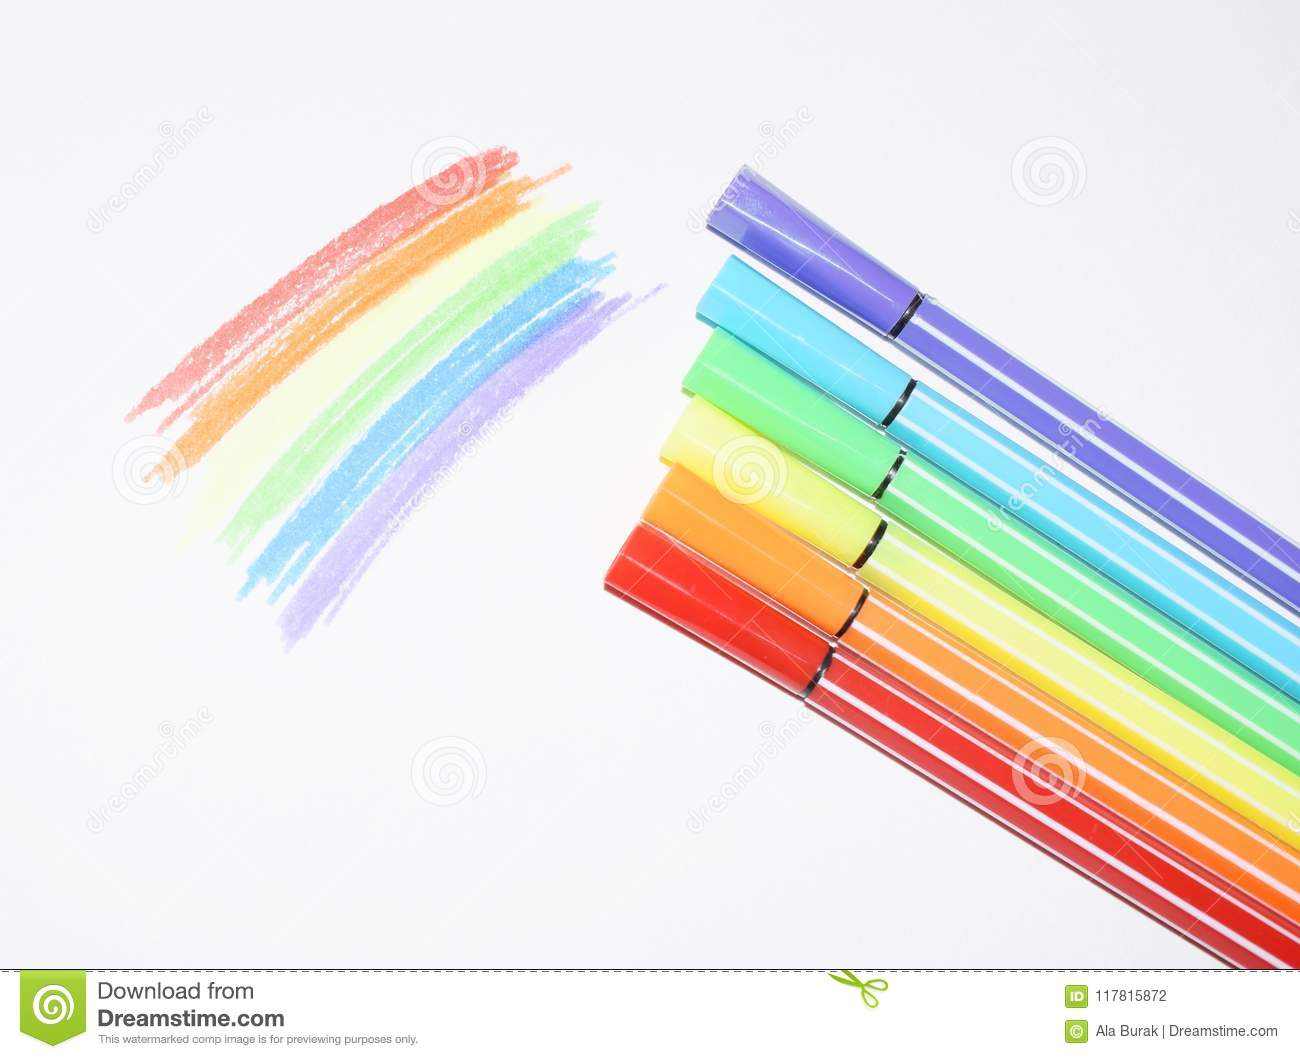 A Photo Of A Rainbow Painted With Colored Felt Tip Pens Symbols Of